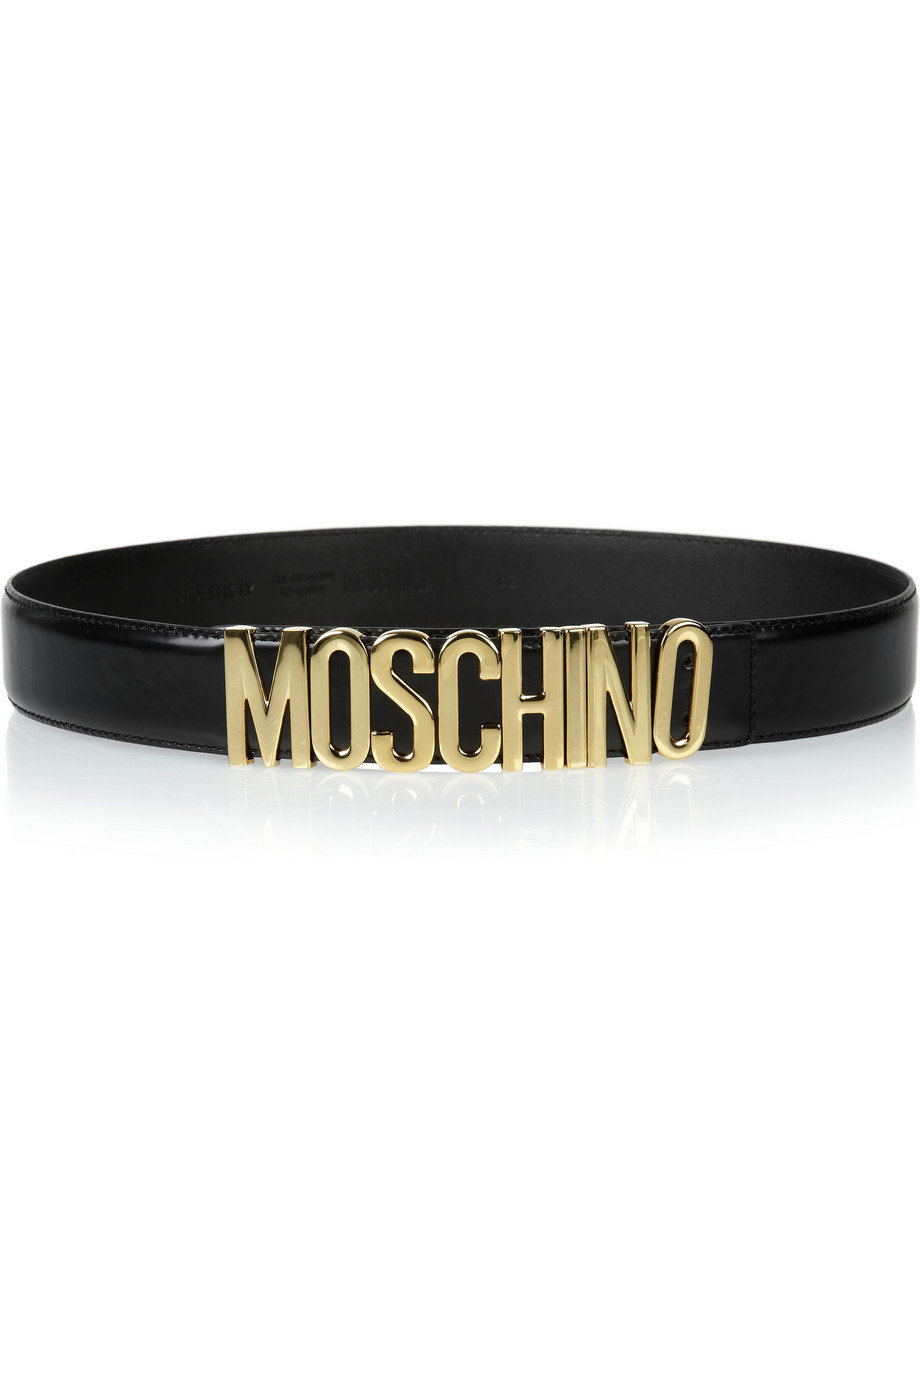 Moschino | Olivia embellished leather waist belt | NET-A-PORTER.COM on Wanelo